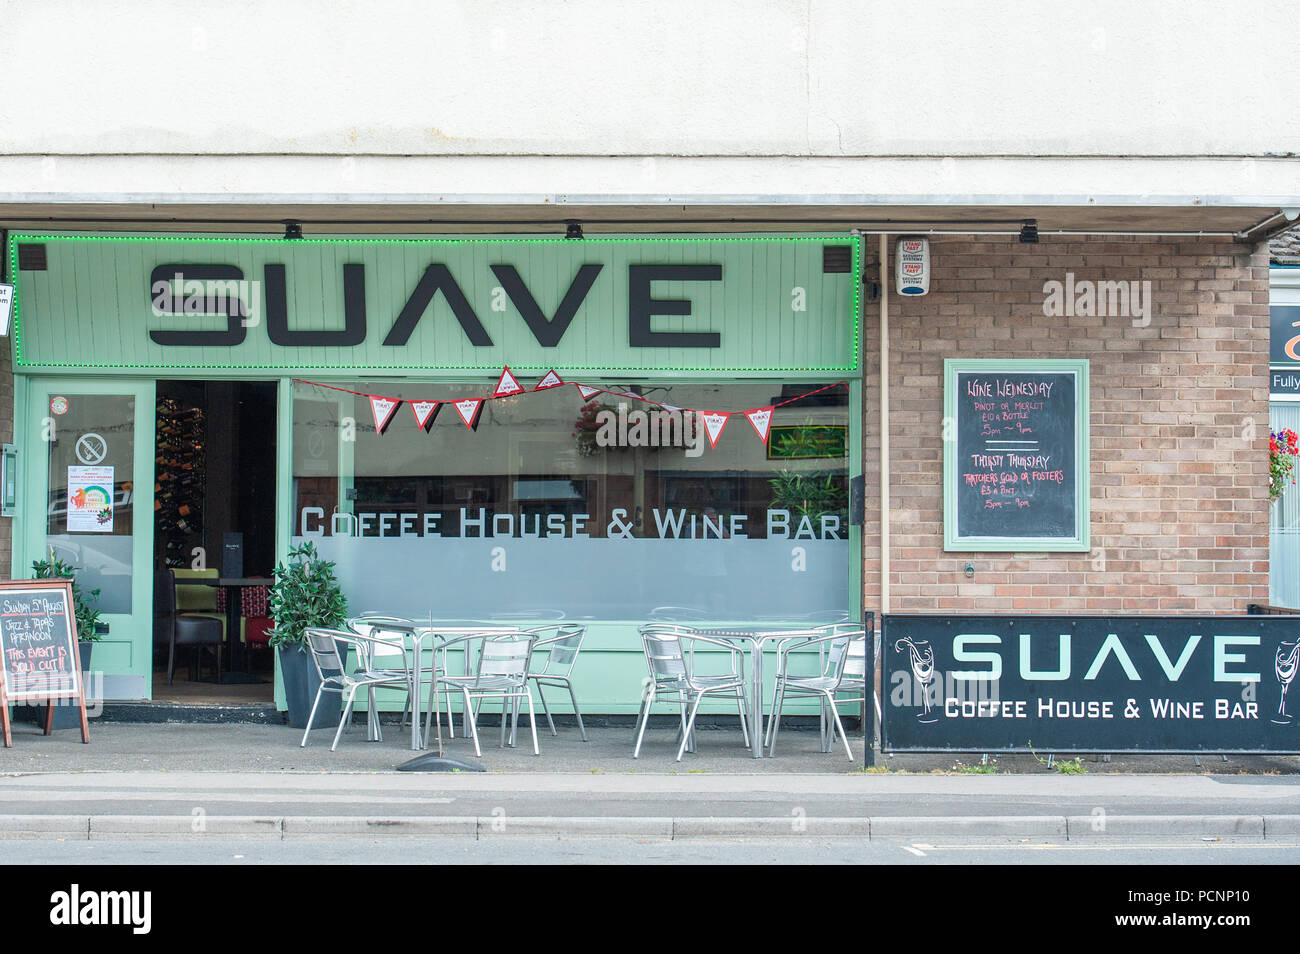 Suave Wine Bar, a play on words, in Westbury, Wiltshire, UK - Stock Image